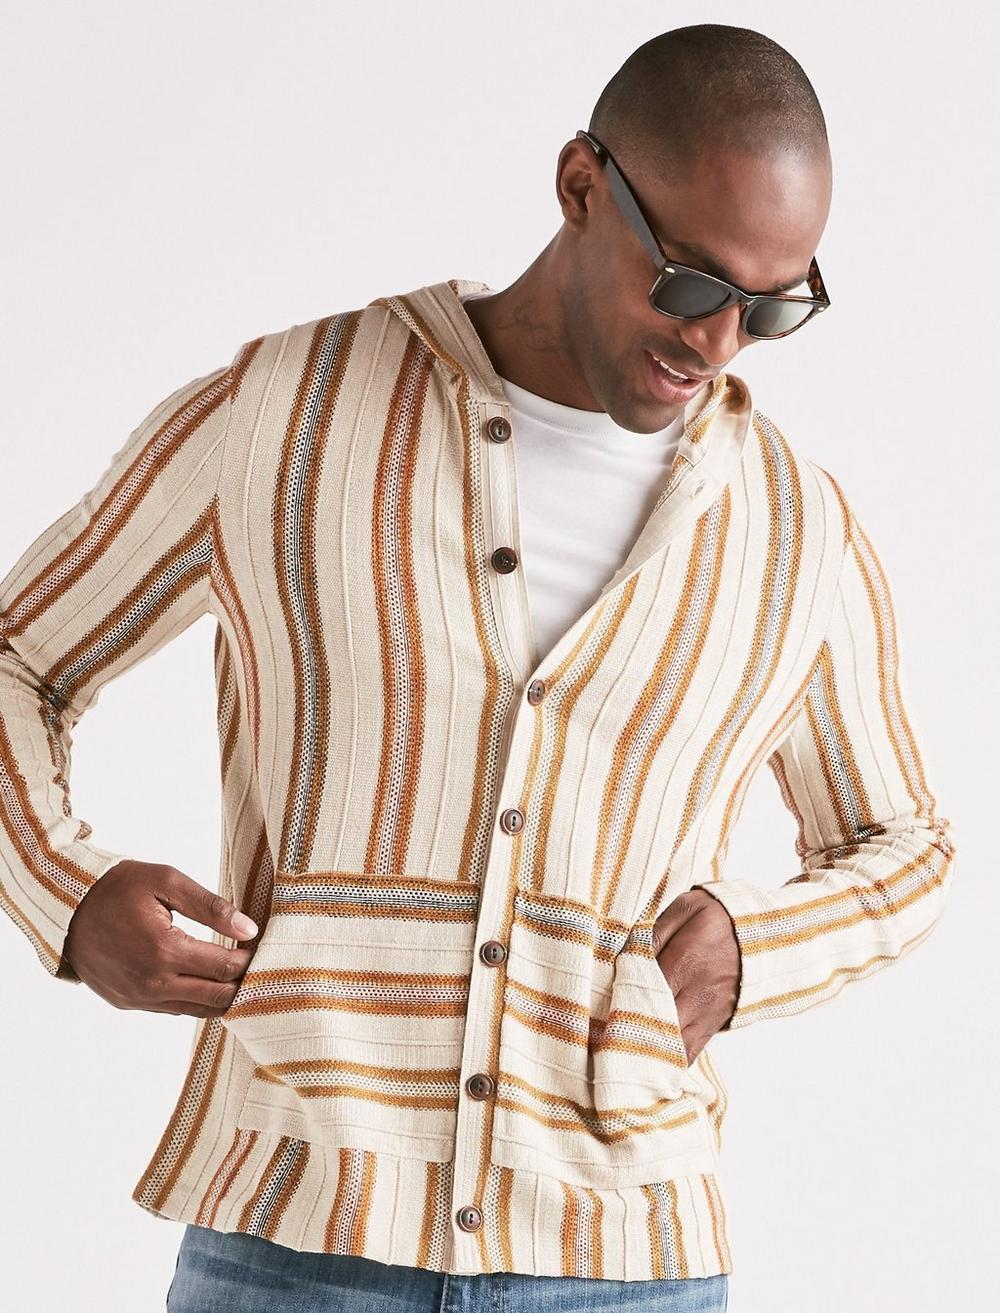 Vintage Shirts – Mens – Retro Shirts Lucky Brand Striped Baja Button Down Shirt Size Medium in Natural $42.00 AT vintagedancer.com